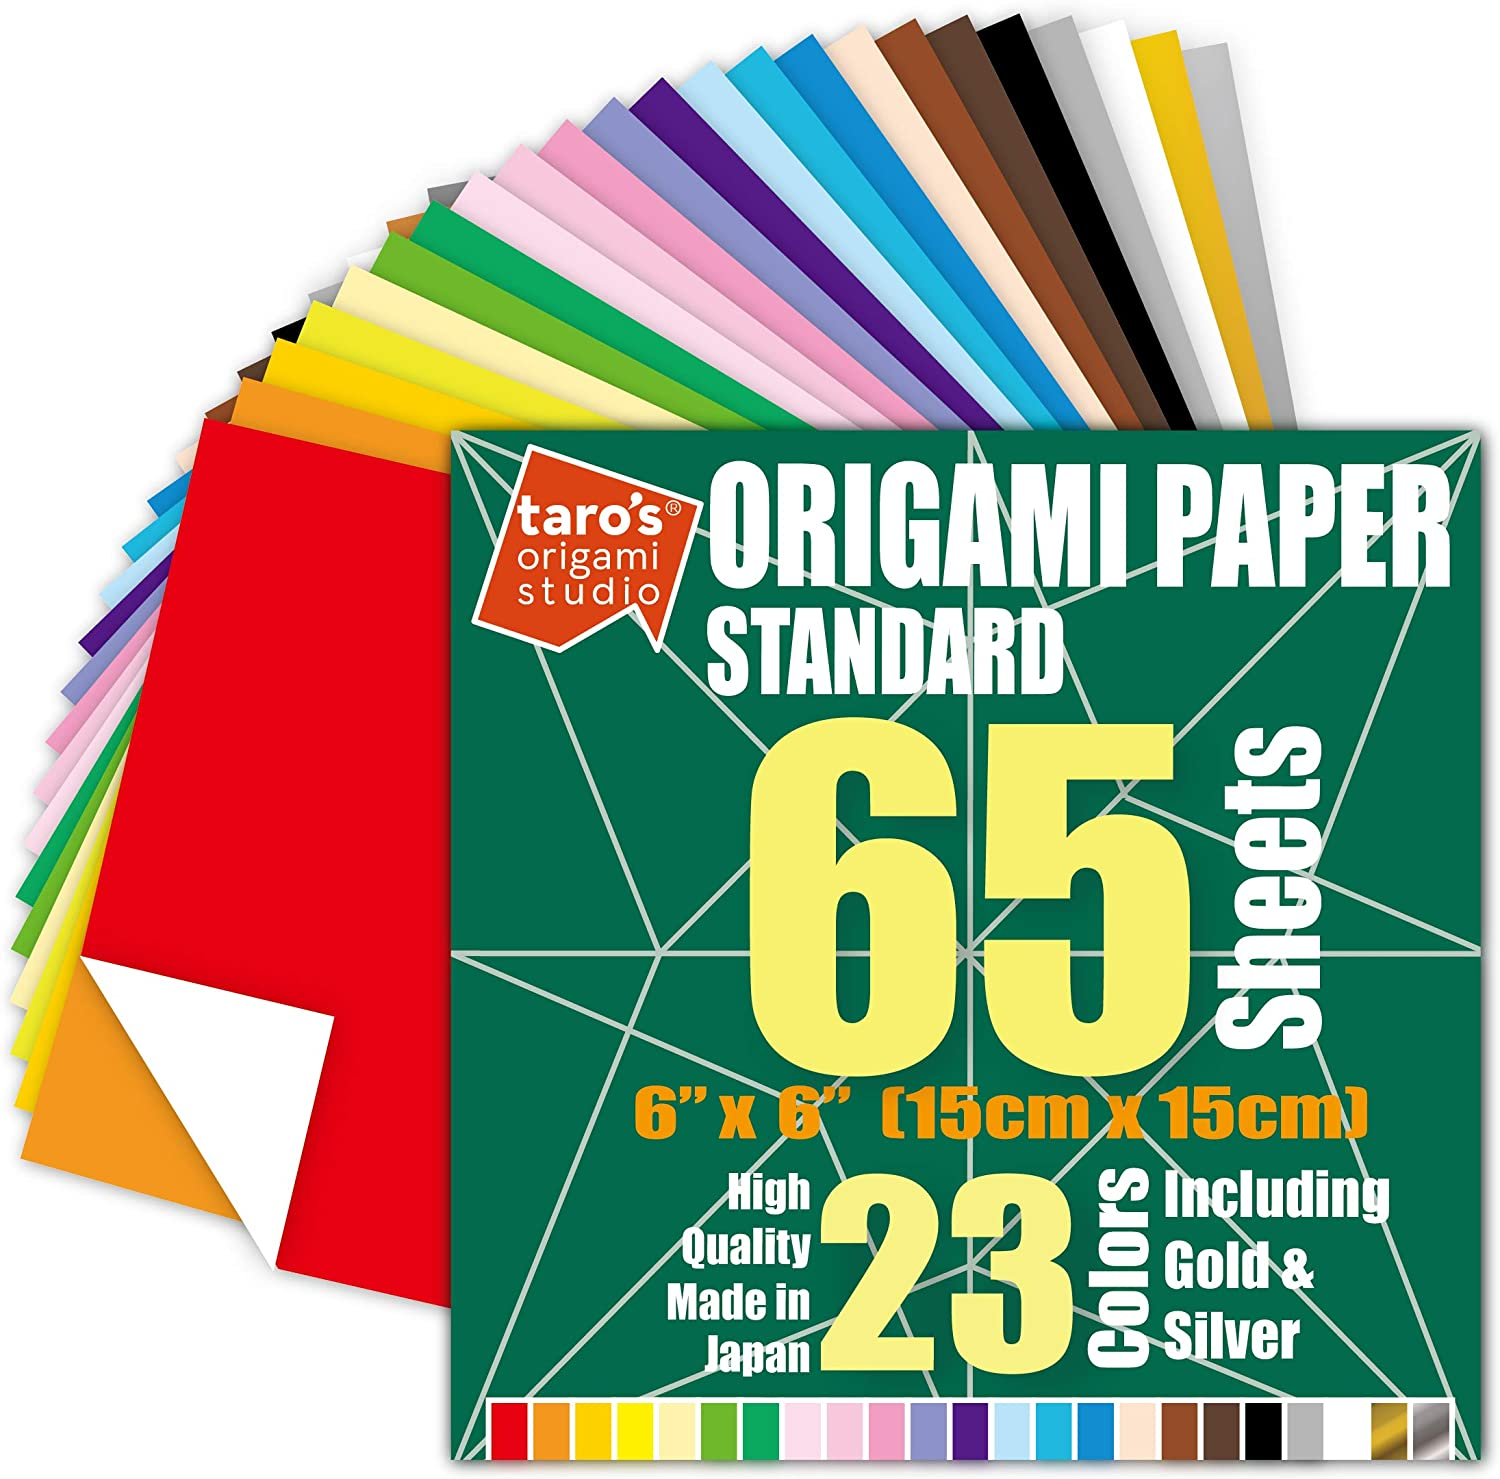 Taros Origami Studio TANT Large 10 Inch Double Sided 50 Colors 50 Sheets Square Easy Fold Premium Japanese Paper for Origami Artist from Beginner to Expert Made in Japan